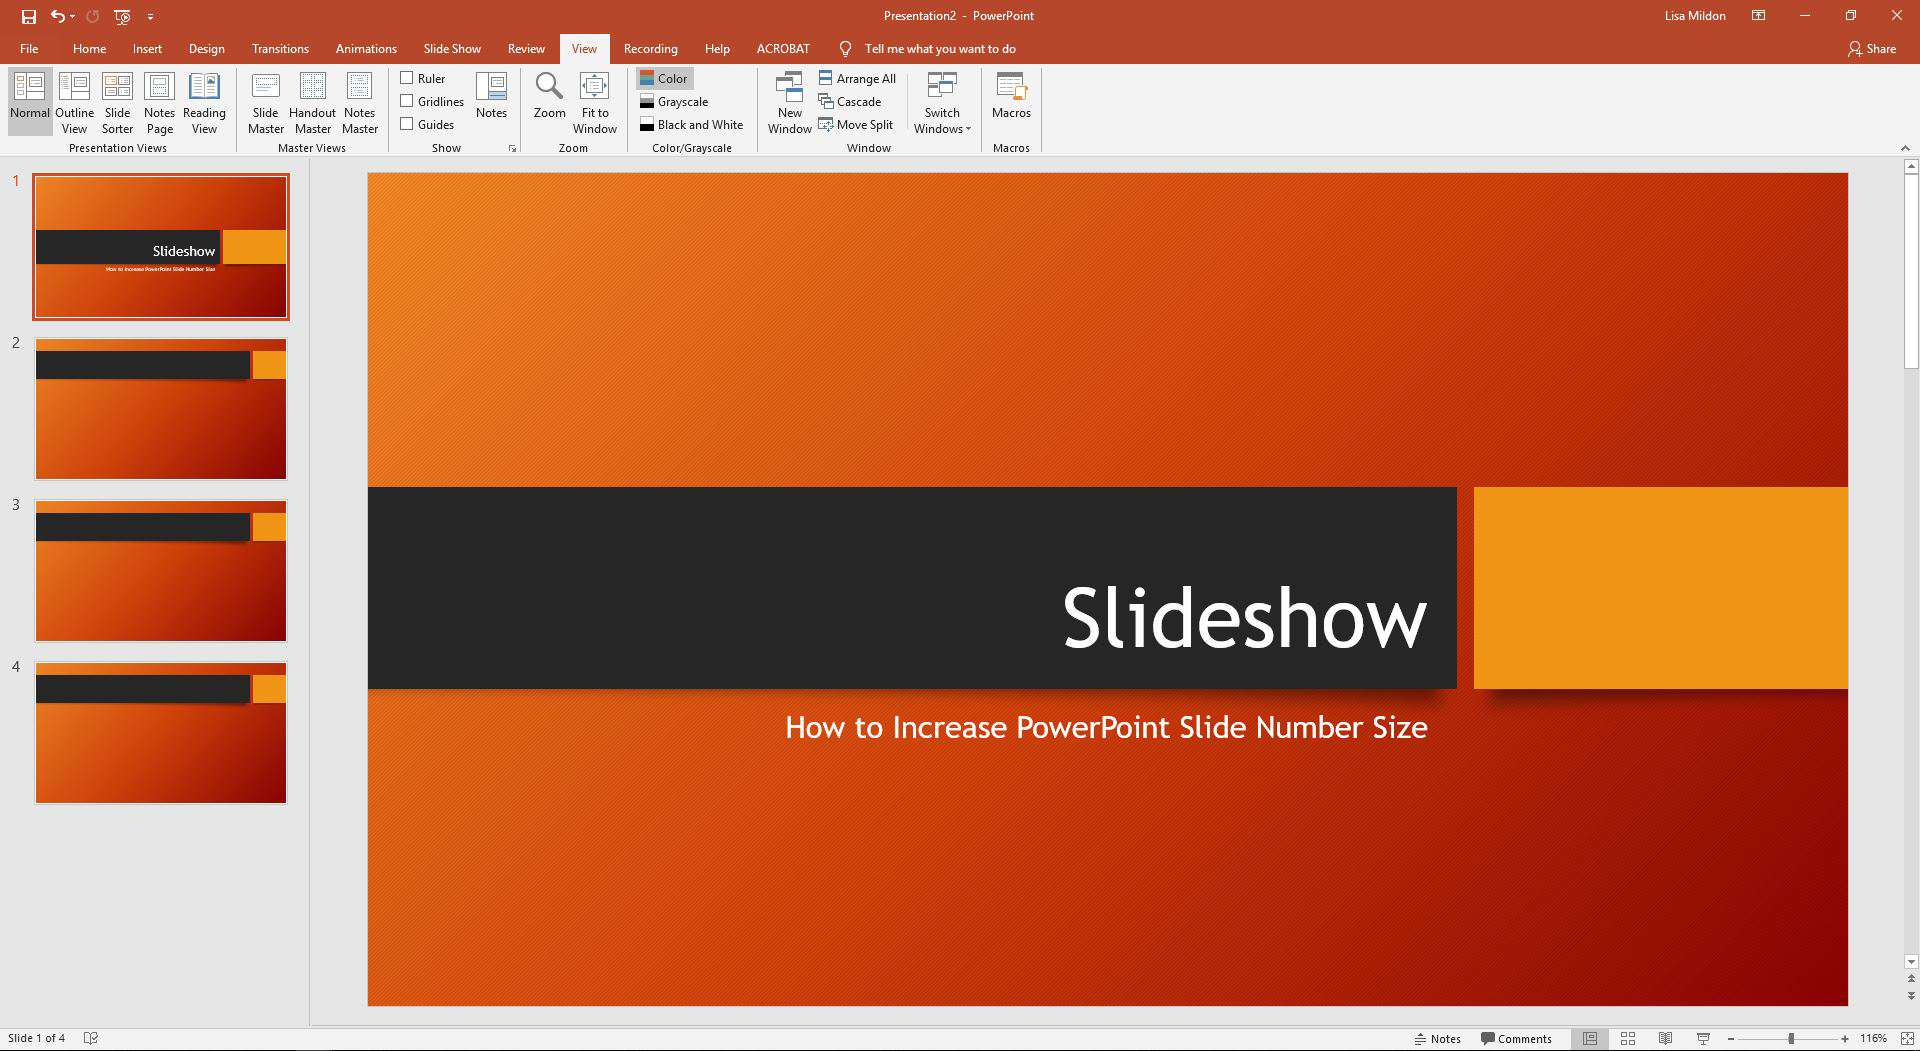 How To Increase Powerpoint Slide Number Size